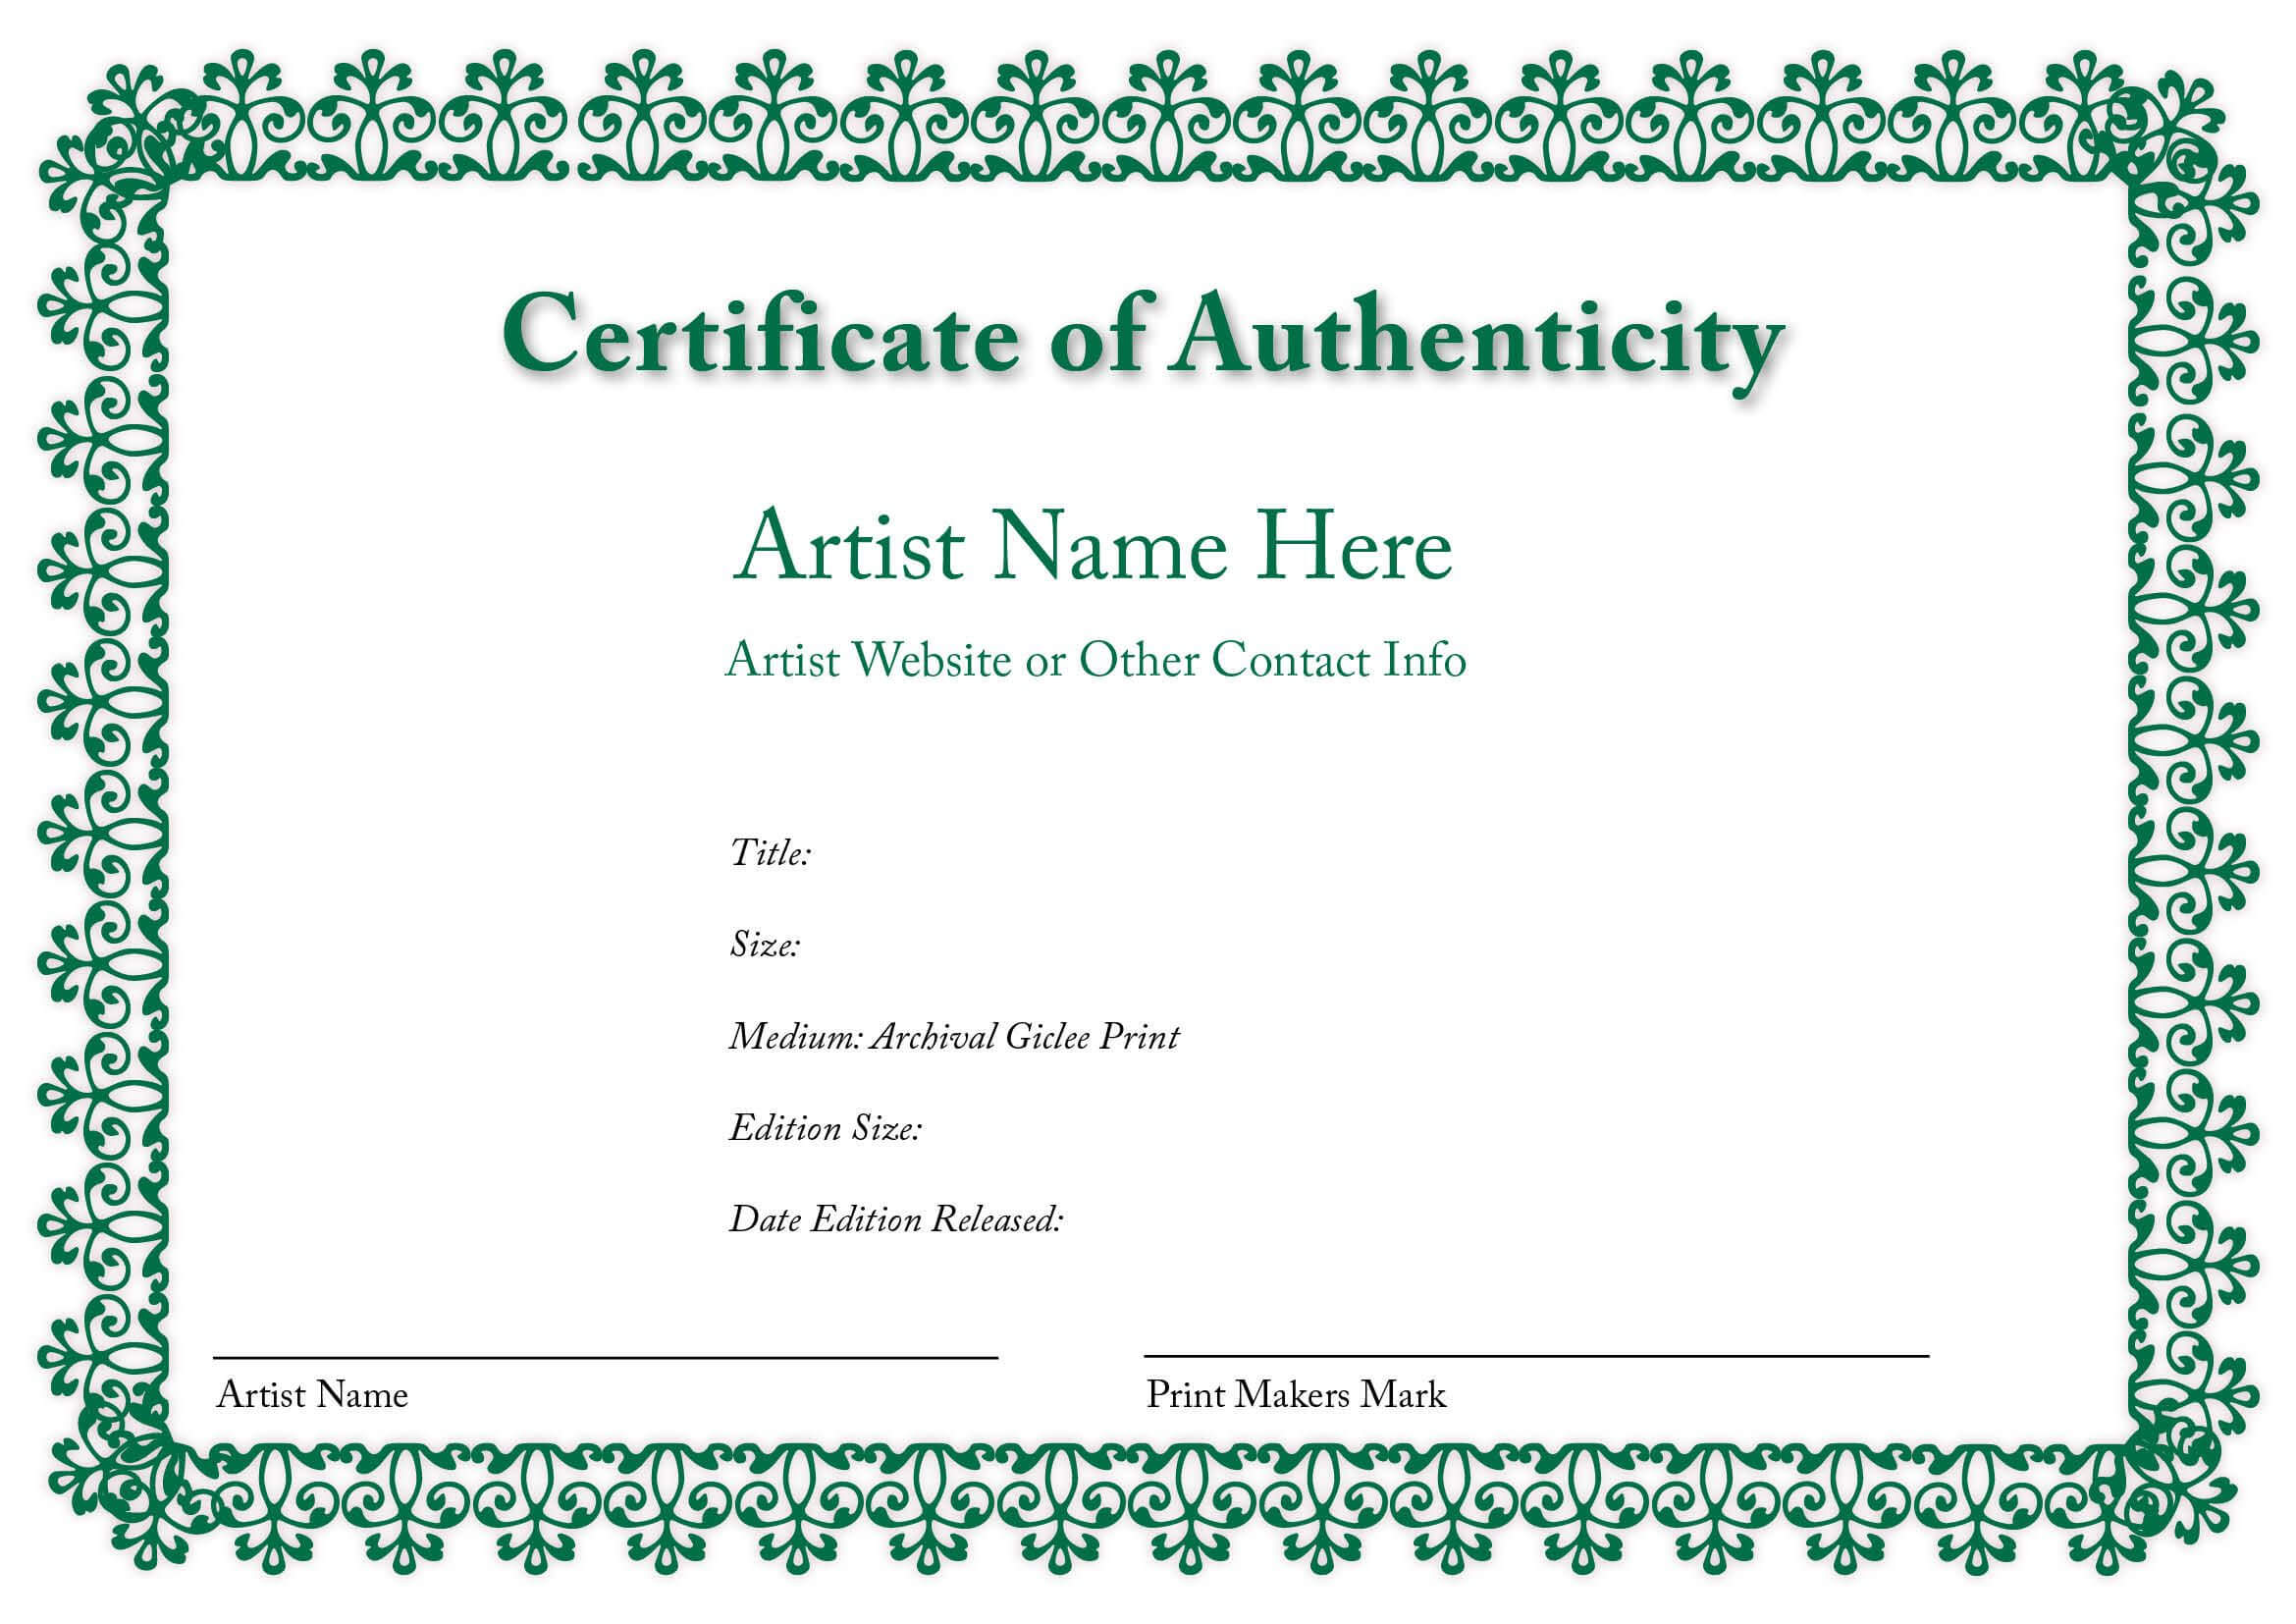 Certificate Of Authenticity Of An Art Print In 2019 | Art in Certificate Of Authenticity Template